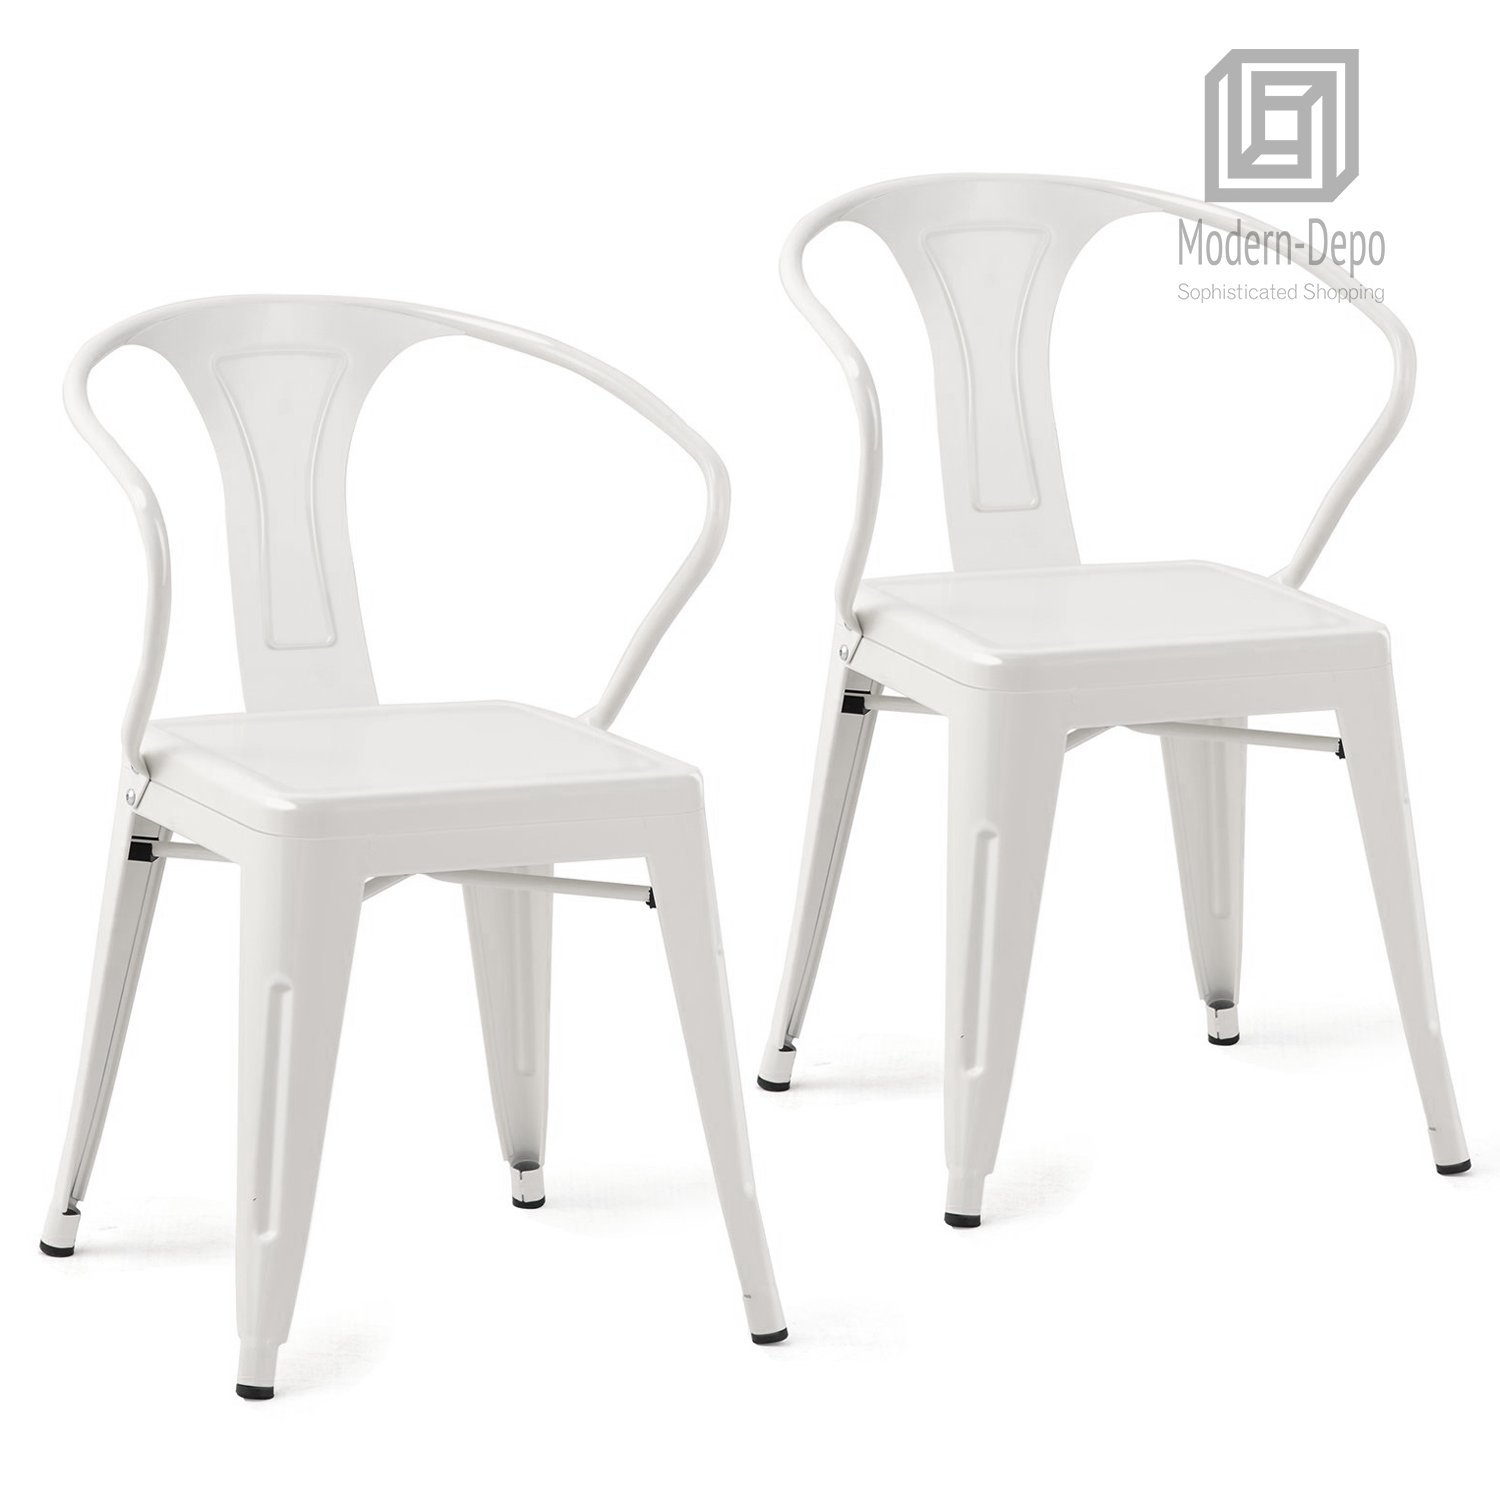 Details About Metal Stackable Chairs Industrial Chic Dining Bistro Cafe Side Chairs Set Of 2